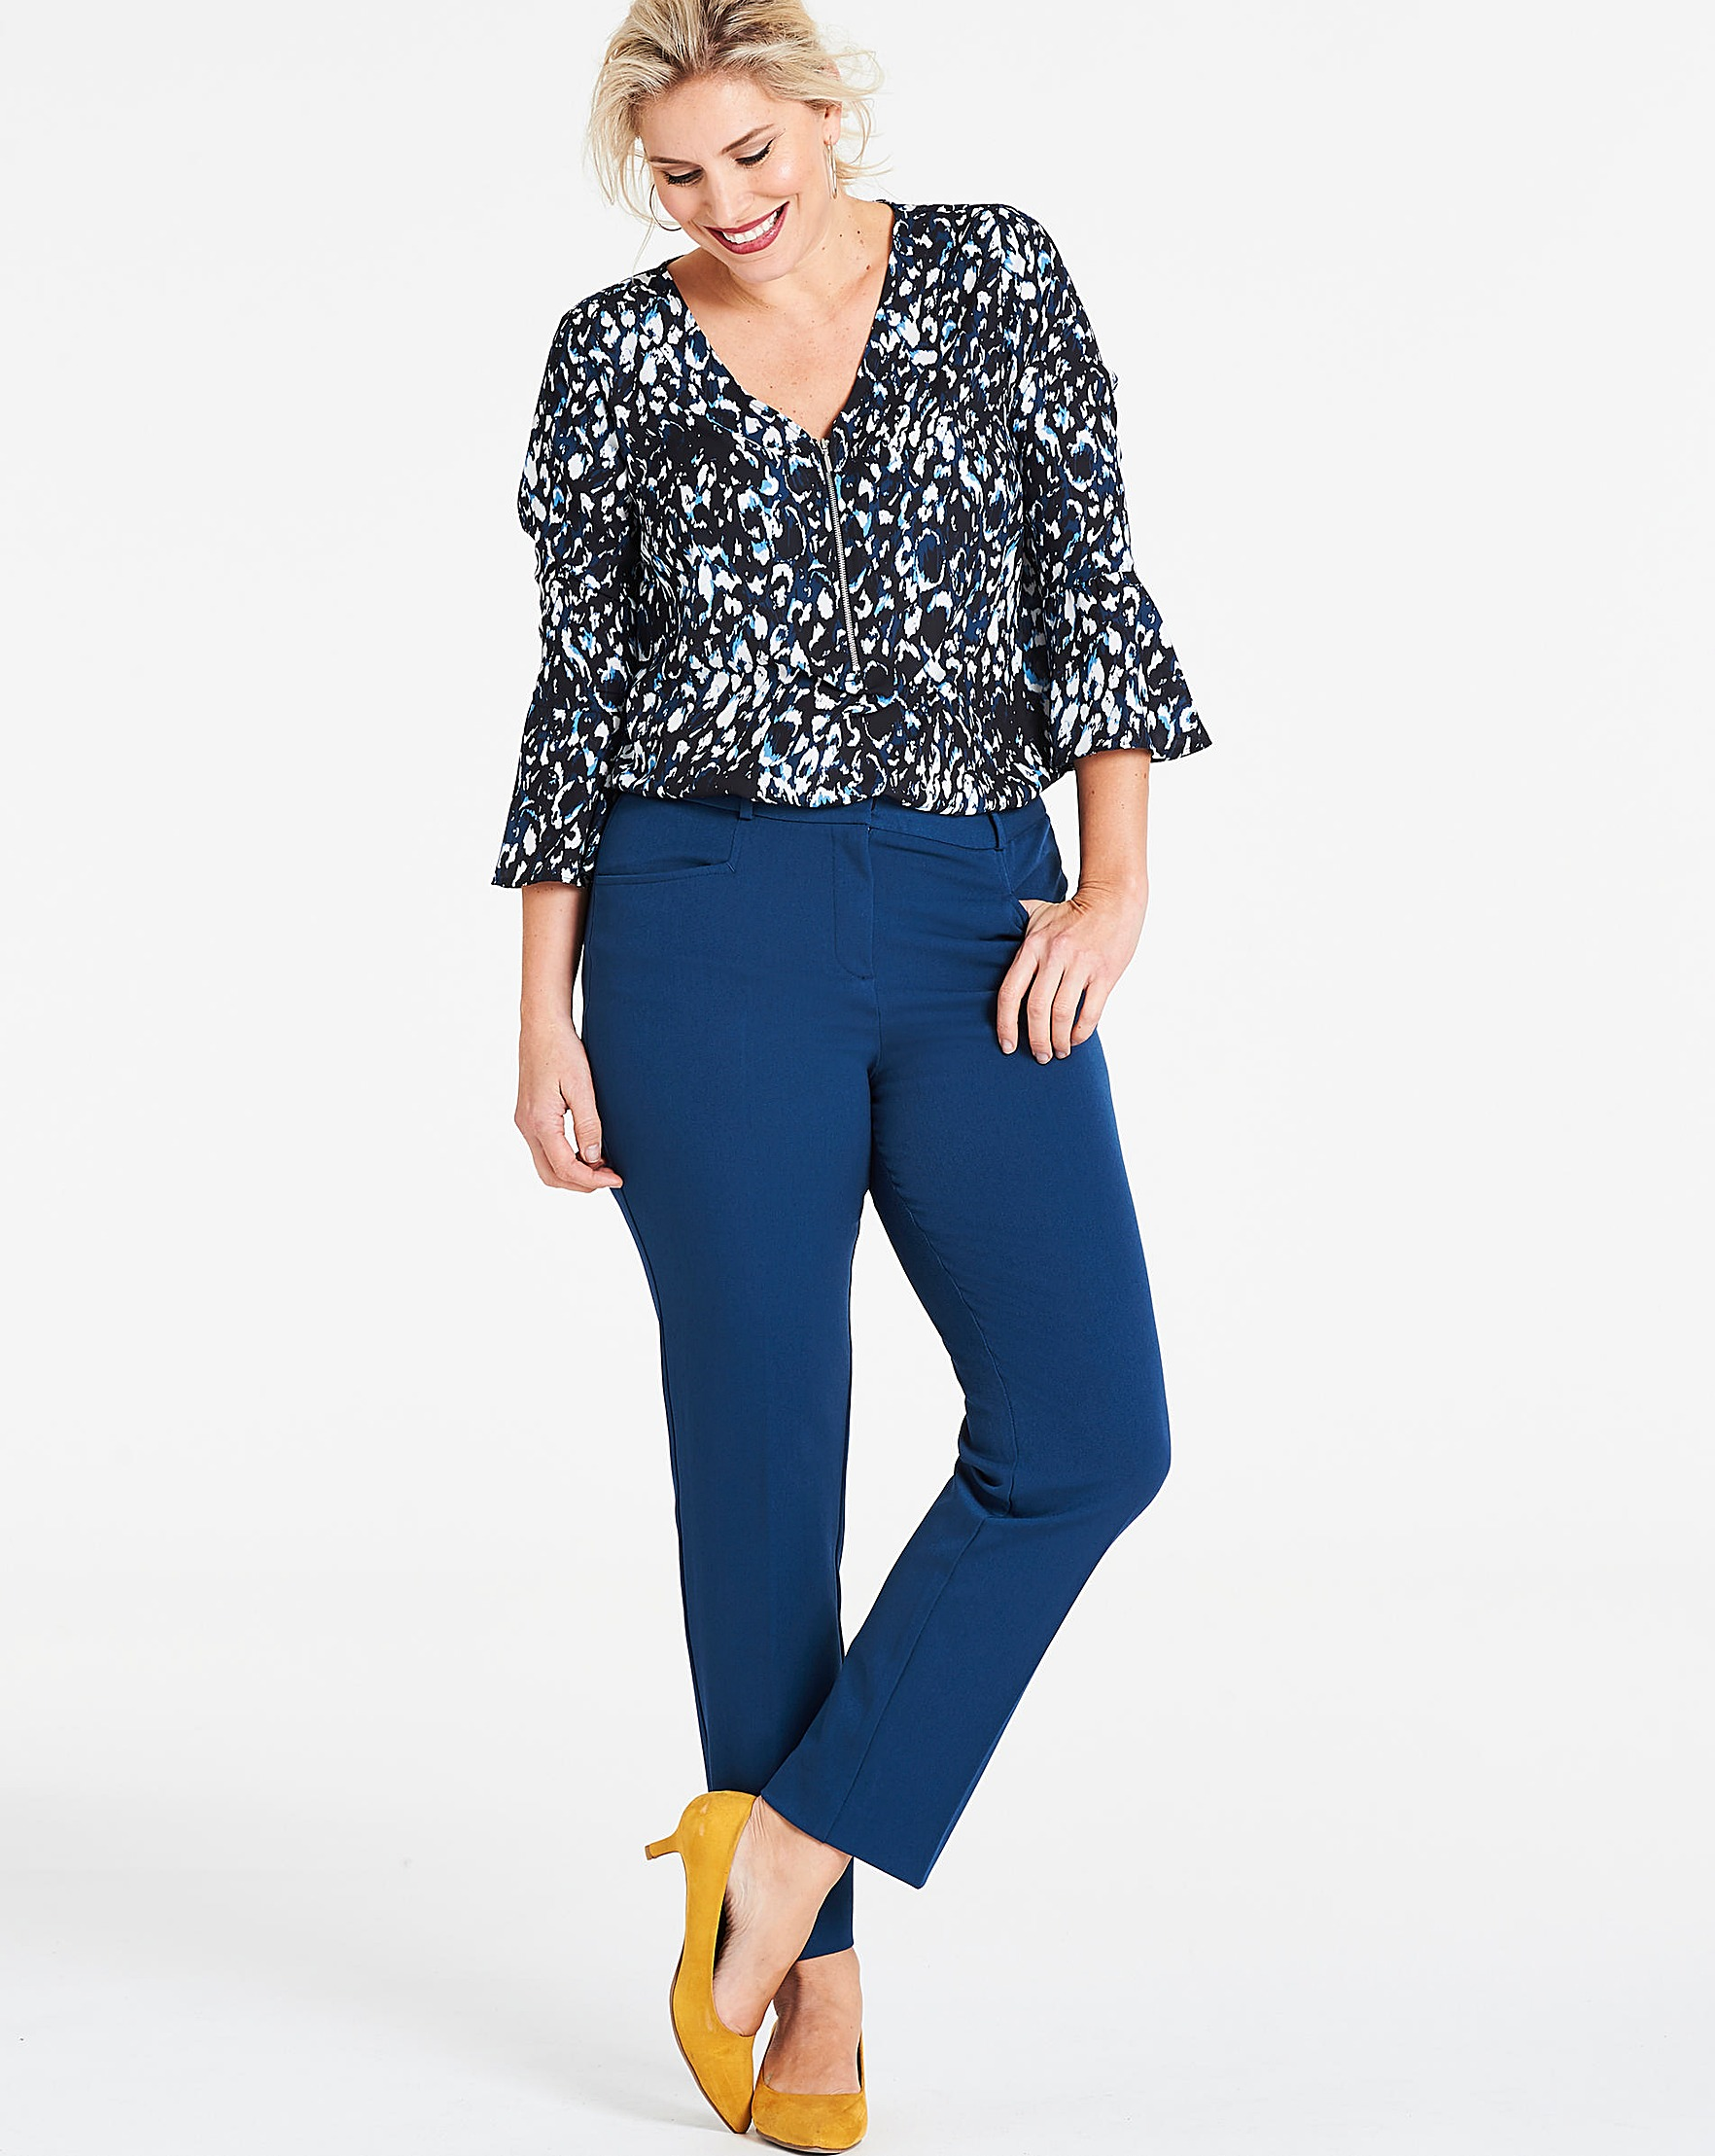 329c9724766a Teal Everyday Kate Slim Leg Trousers | J D Williams